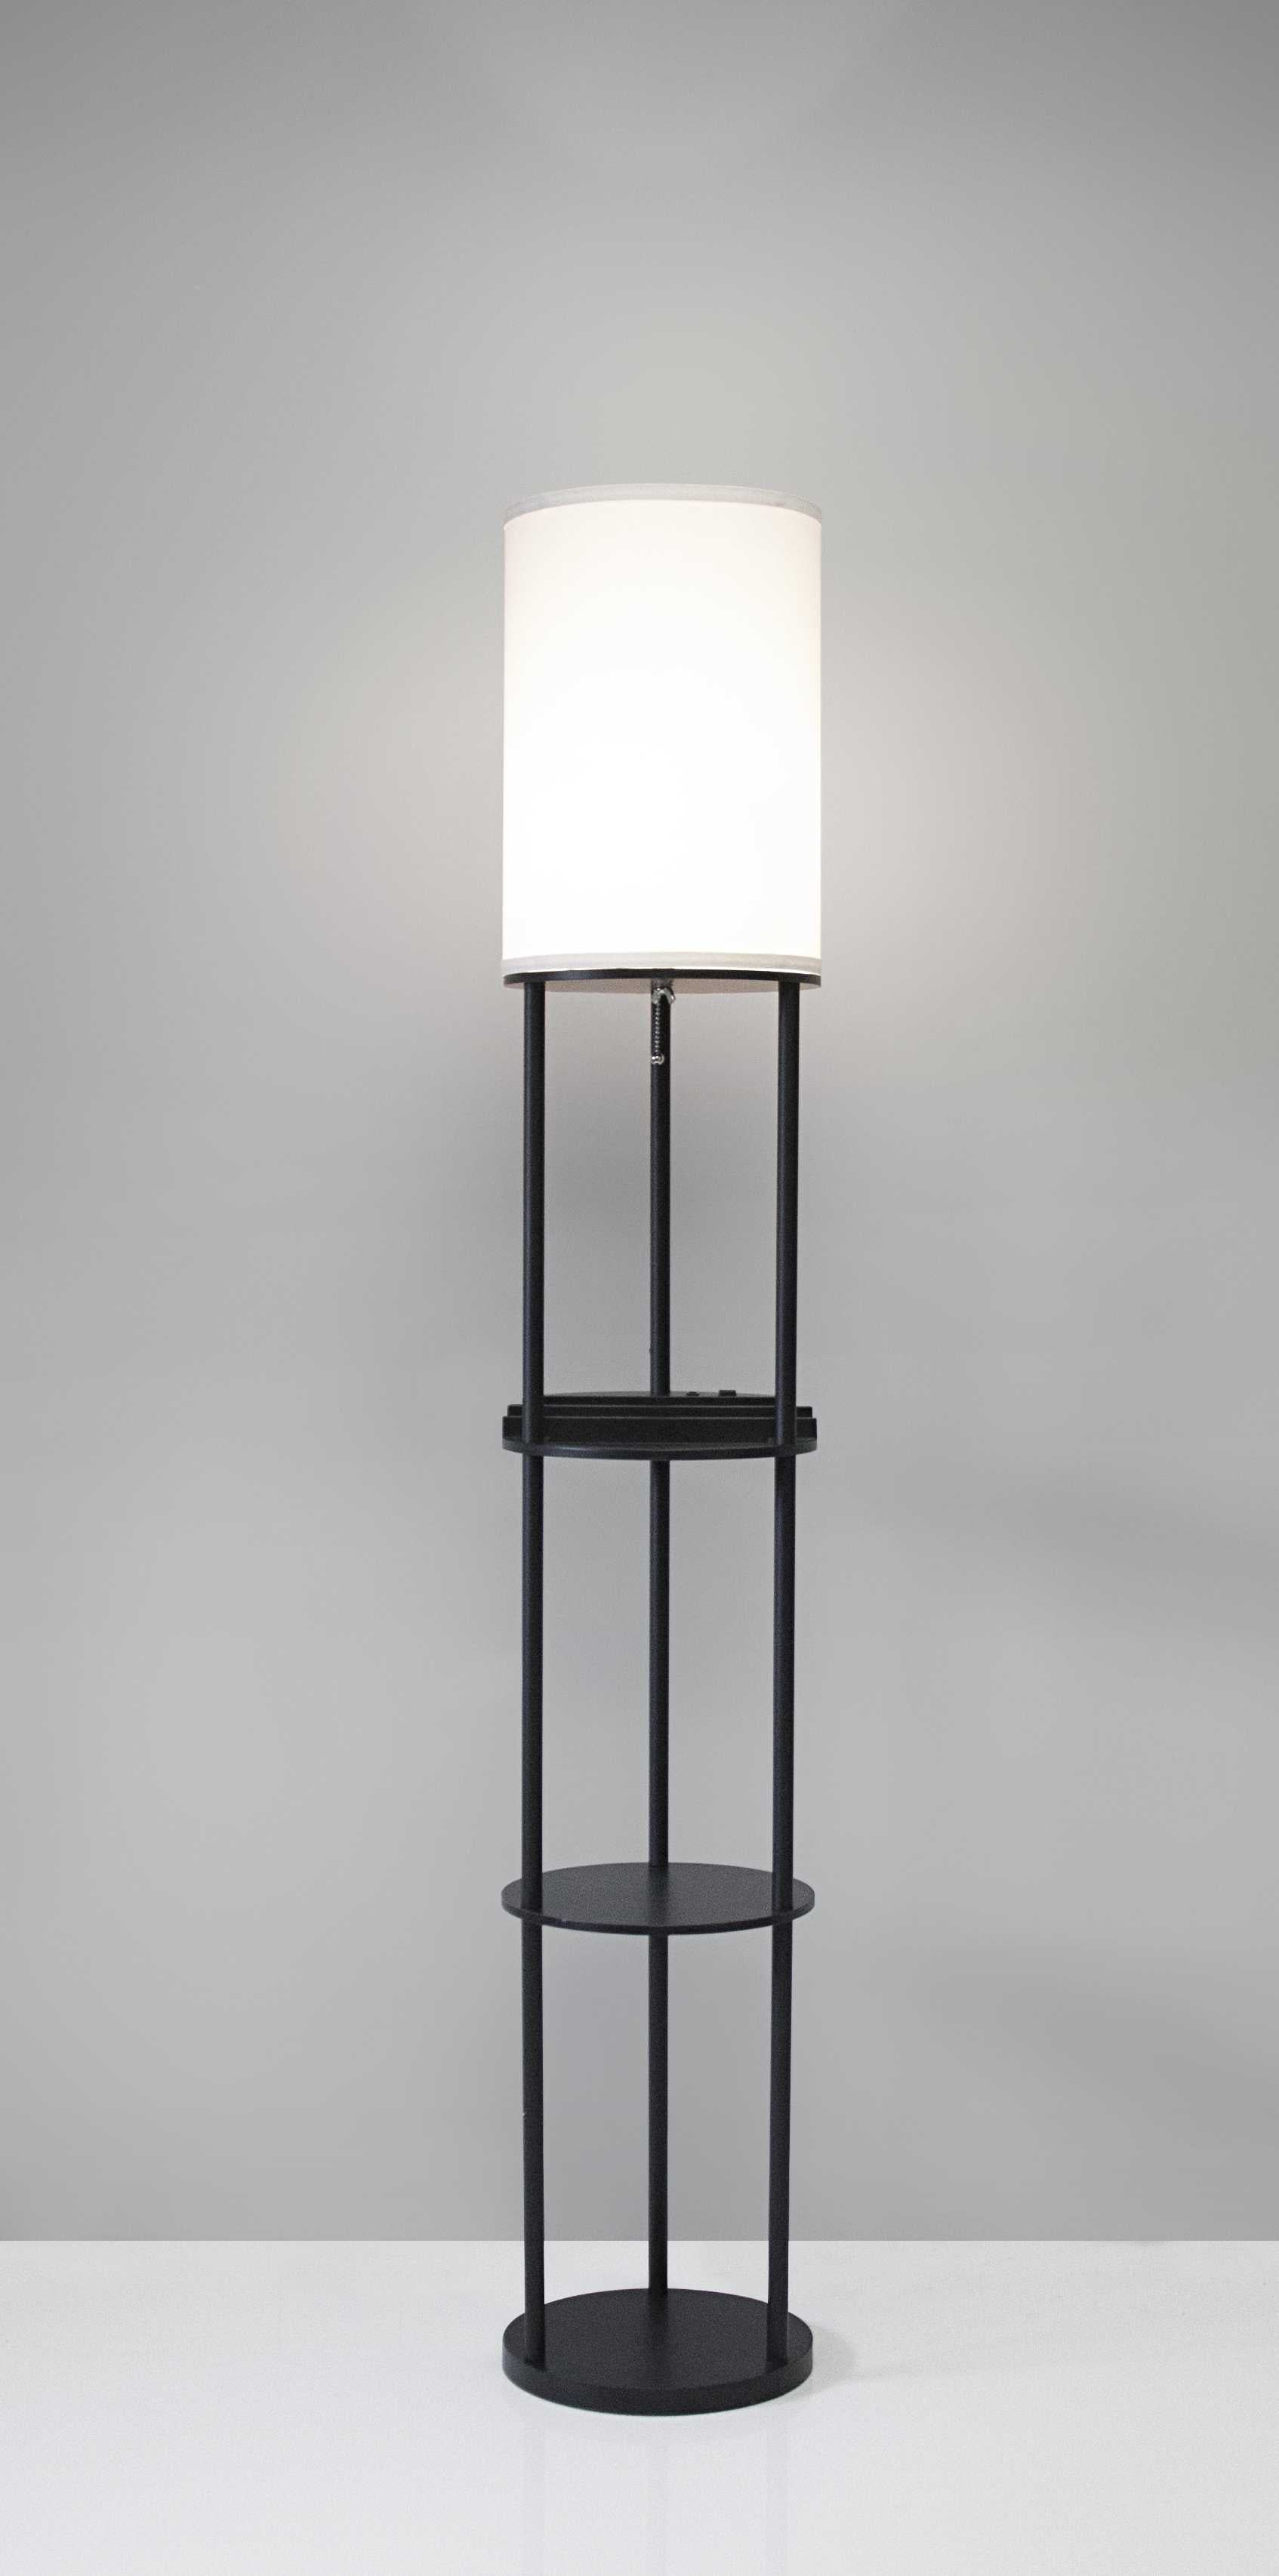 "11"" X 11"" X 66.5"" Black Wood Station Shelf Floor Lamp"